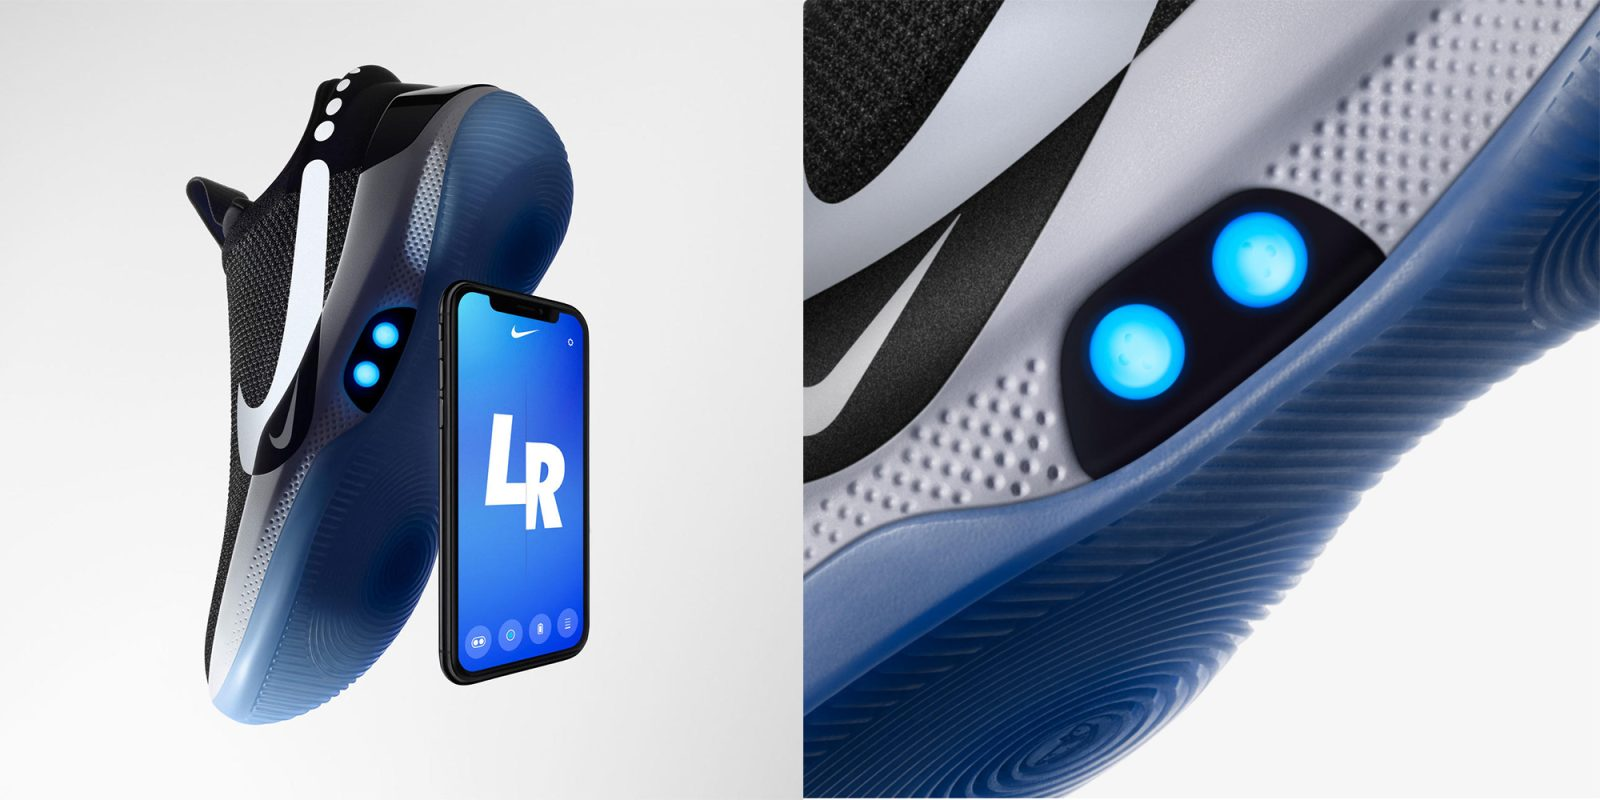 805e8f0df7 Nike's self-lacing Adapt BB basketball shoes feature iPhone control,  customizable LEDs